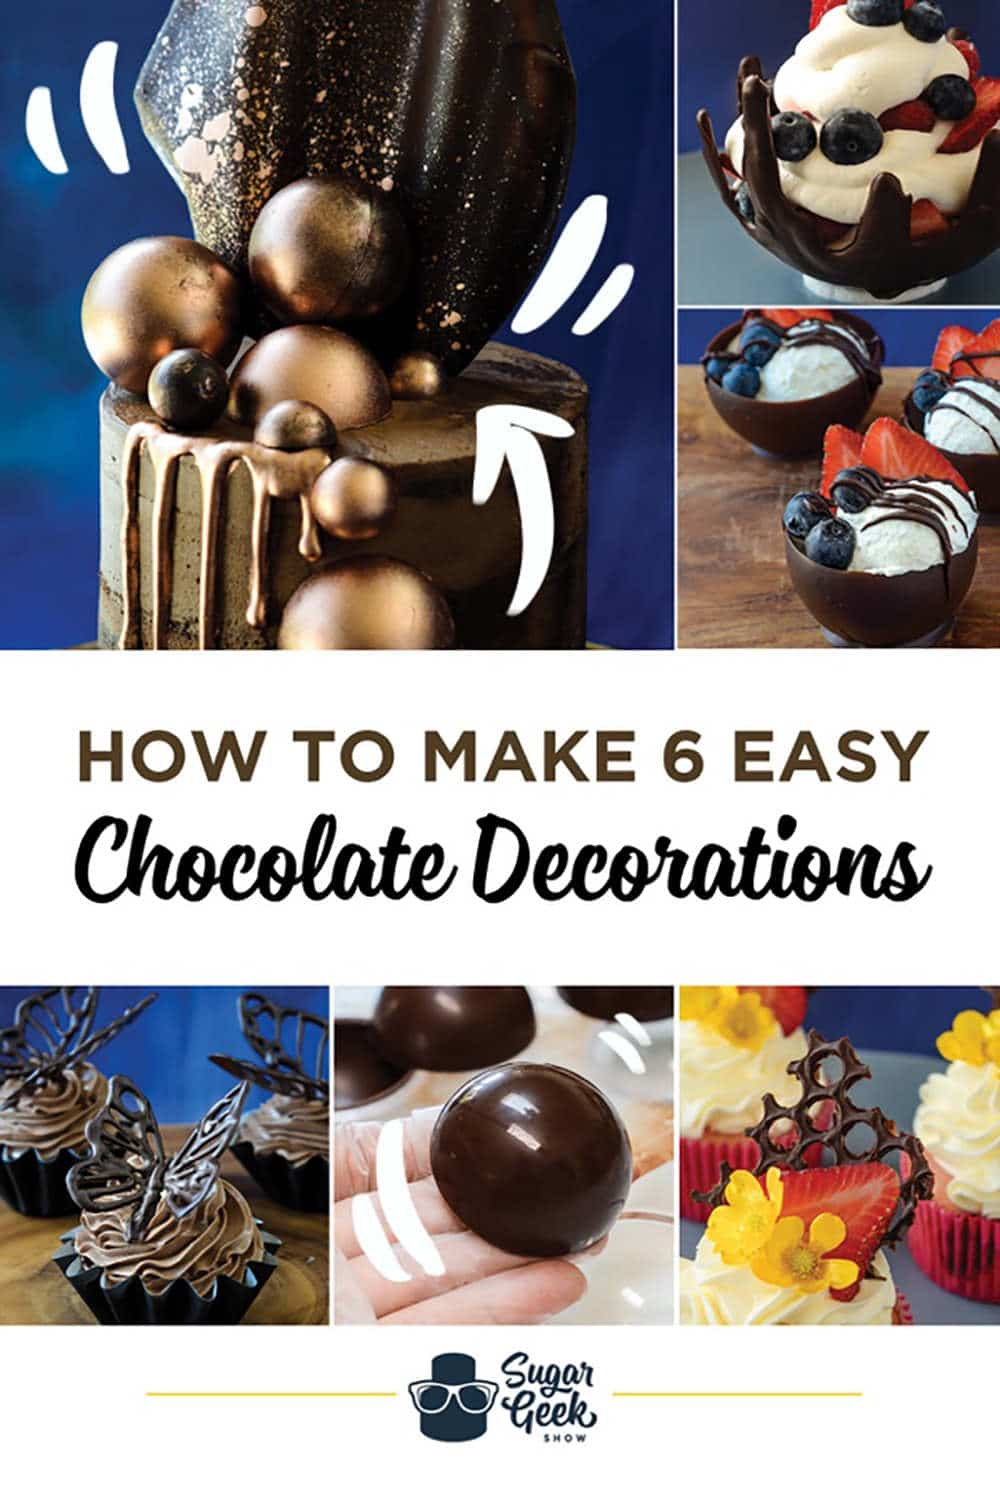 how to make 6 easy chocolate decorations